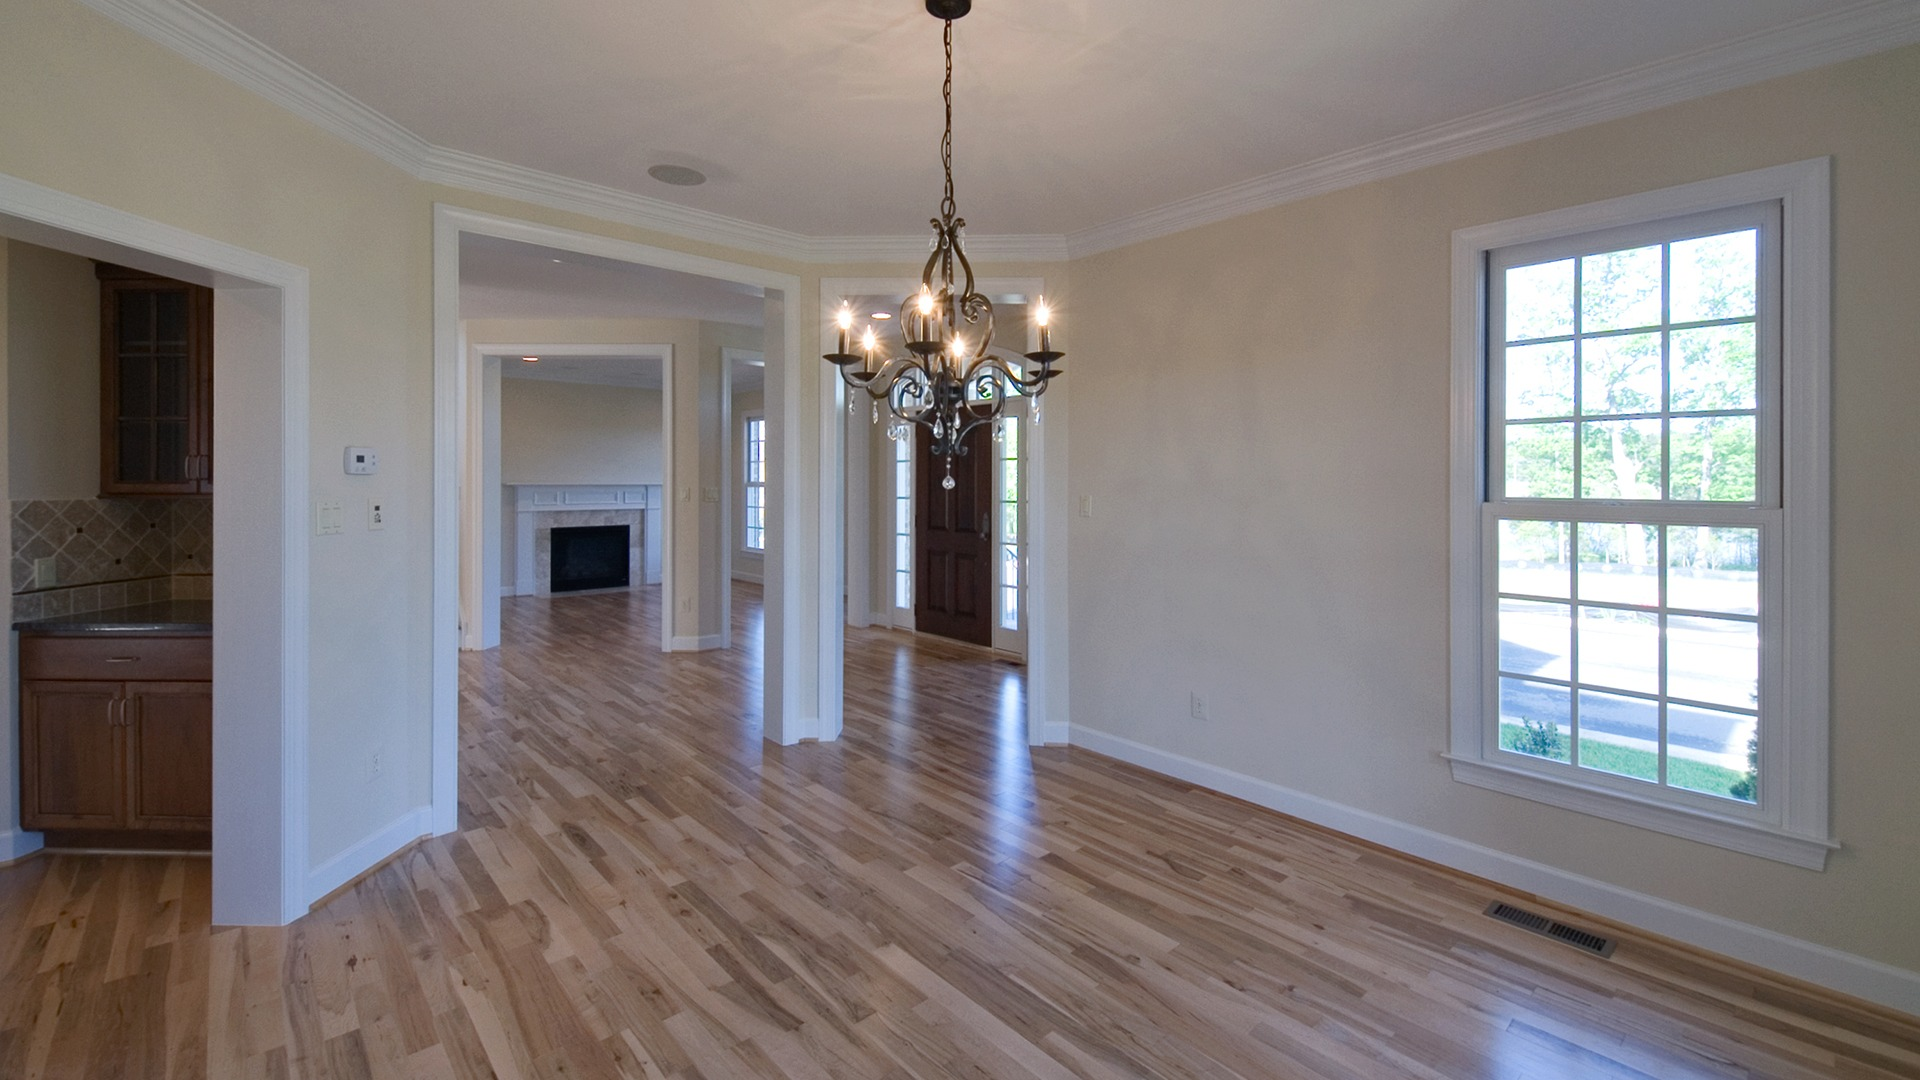 The Dining Room of the Brentwood model in Brambleton. Some options shown.